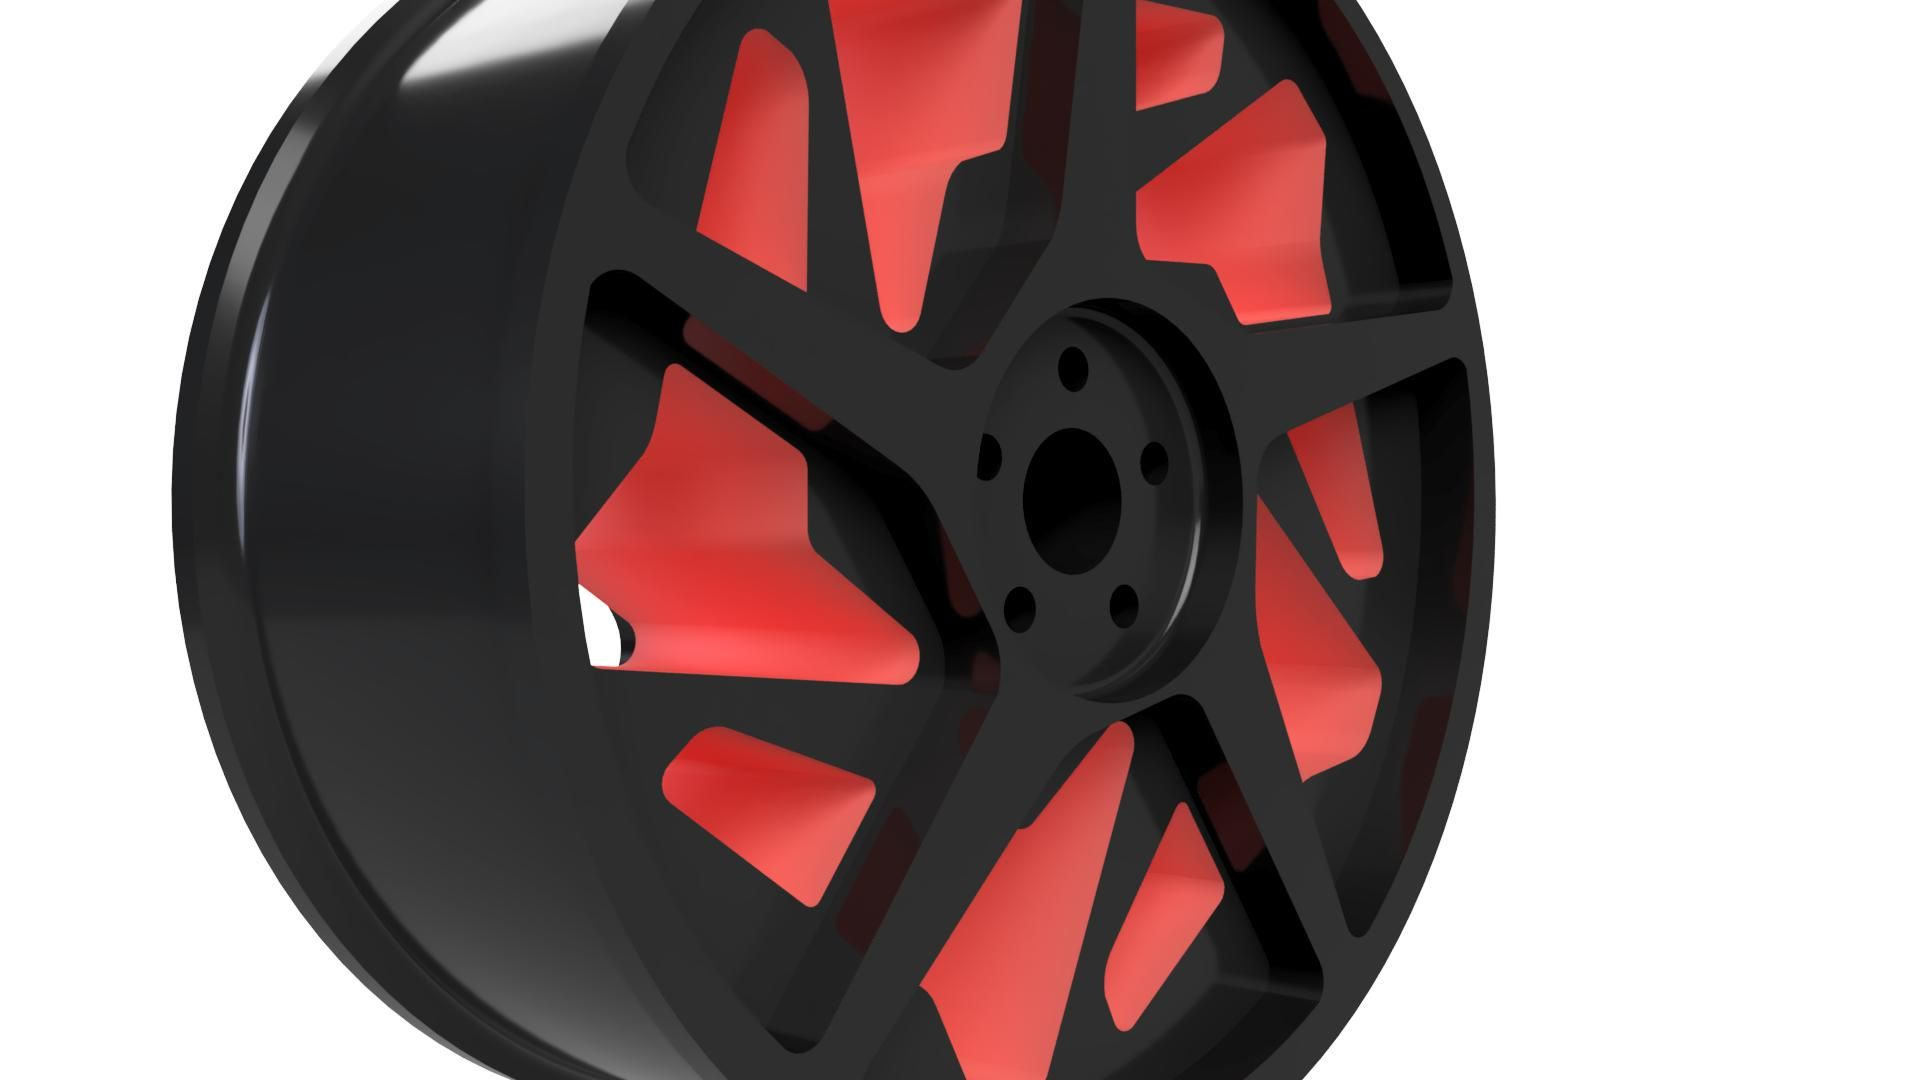 Roda-design-carfab-2018-may-20-04-16-42pm-000-customizedview15185637991-3500-3500